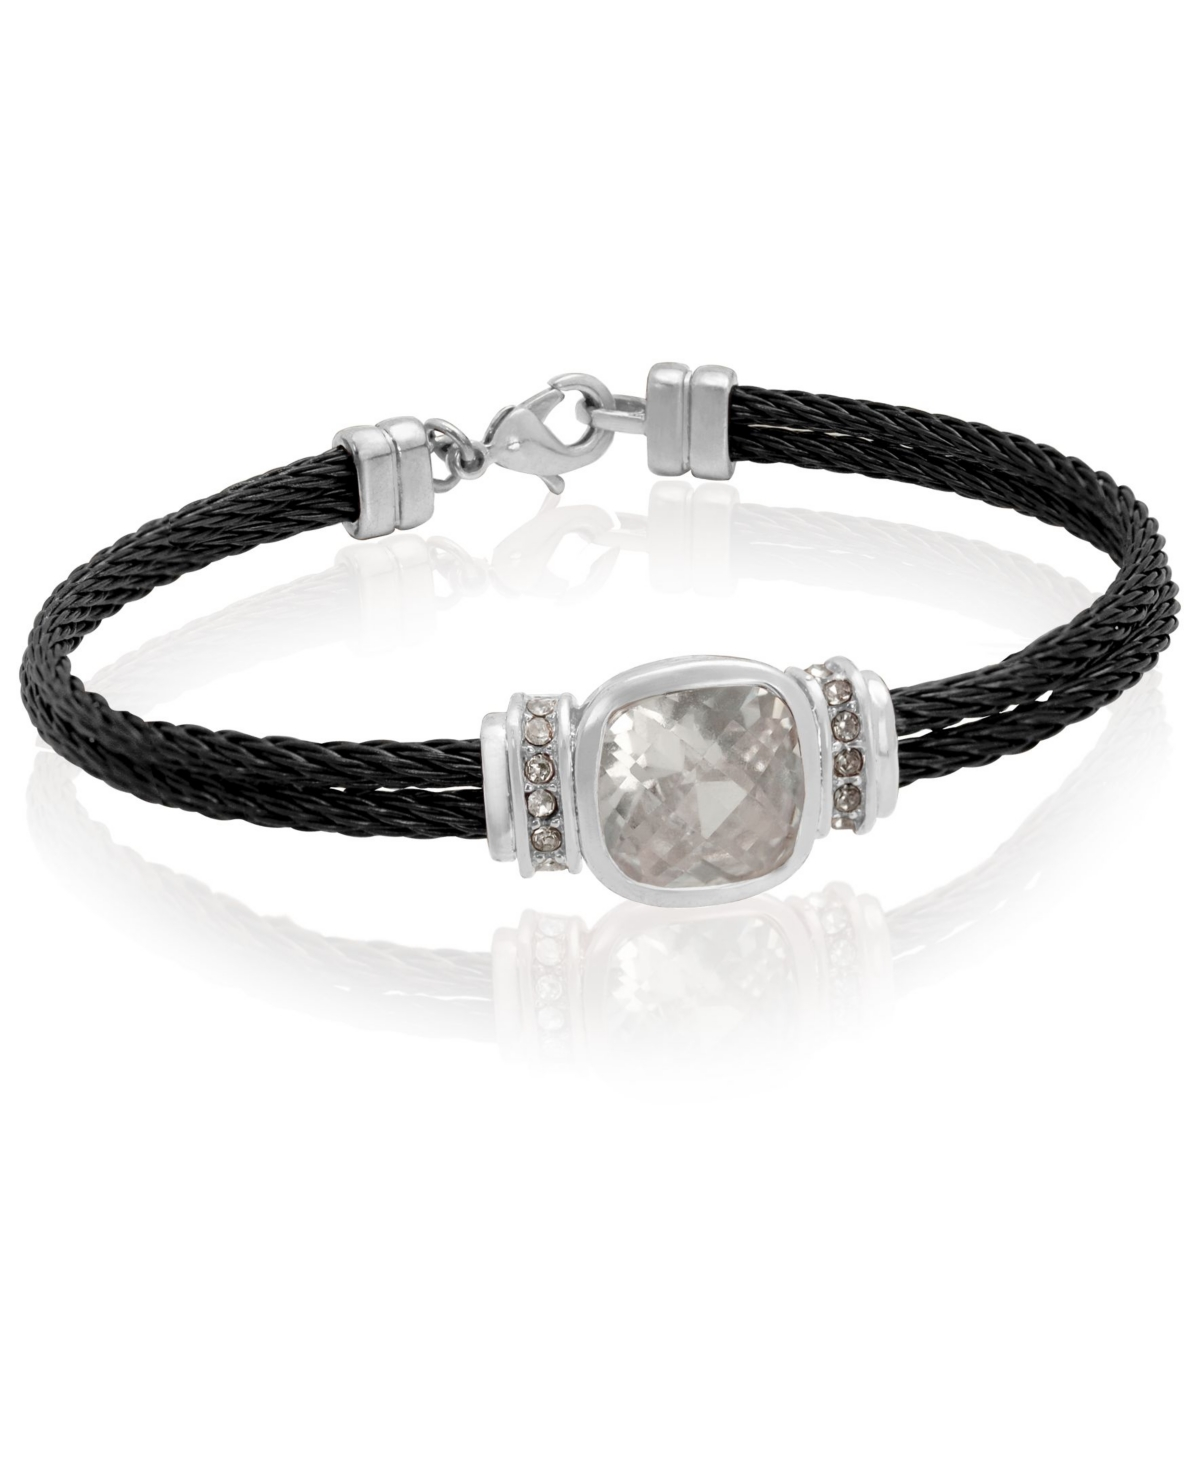 Grey and gold-tone stainless steel and crystal bracelet